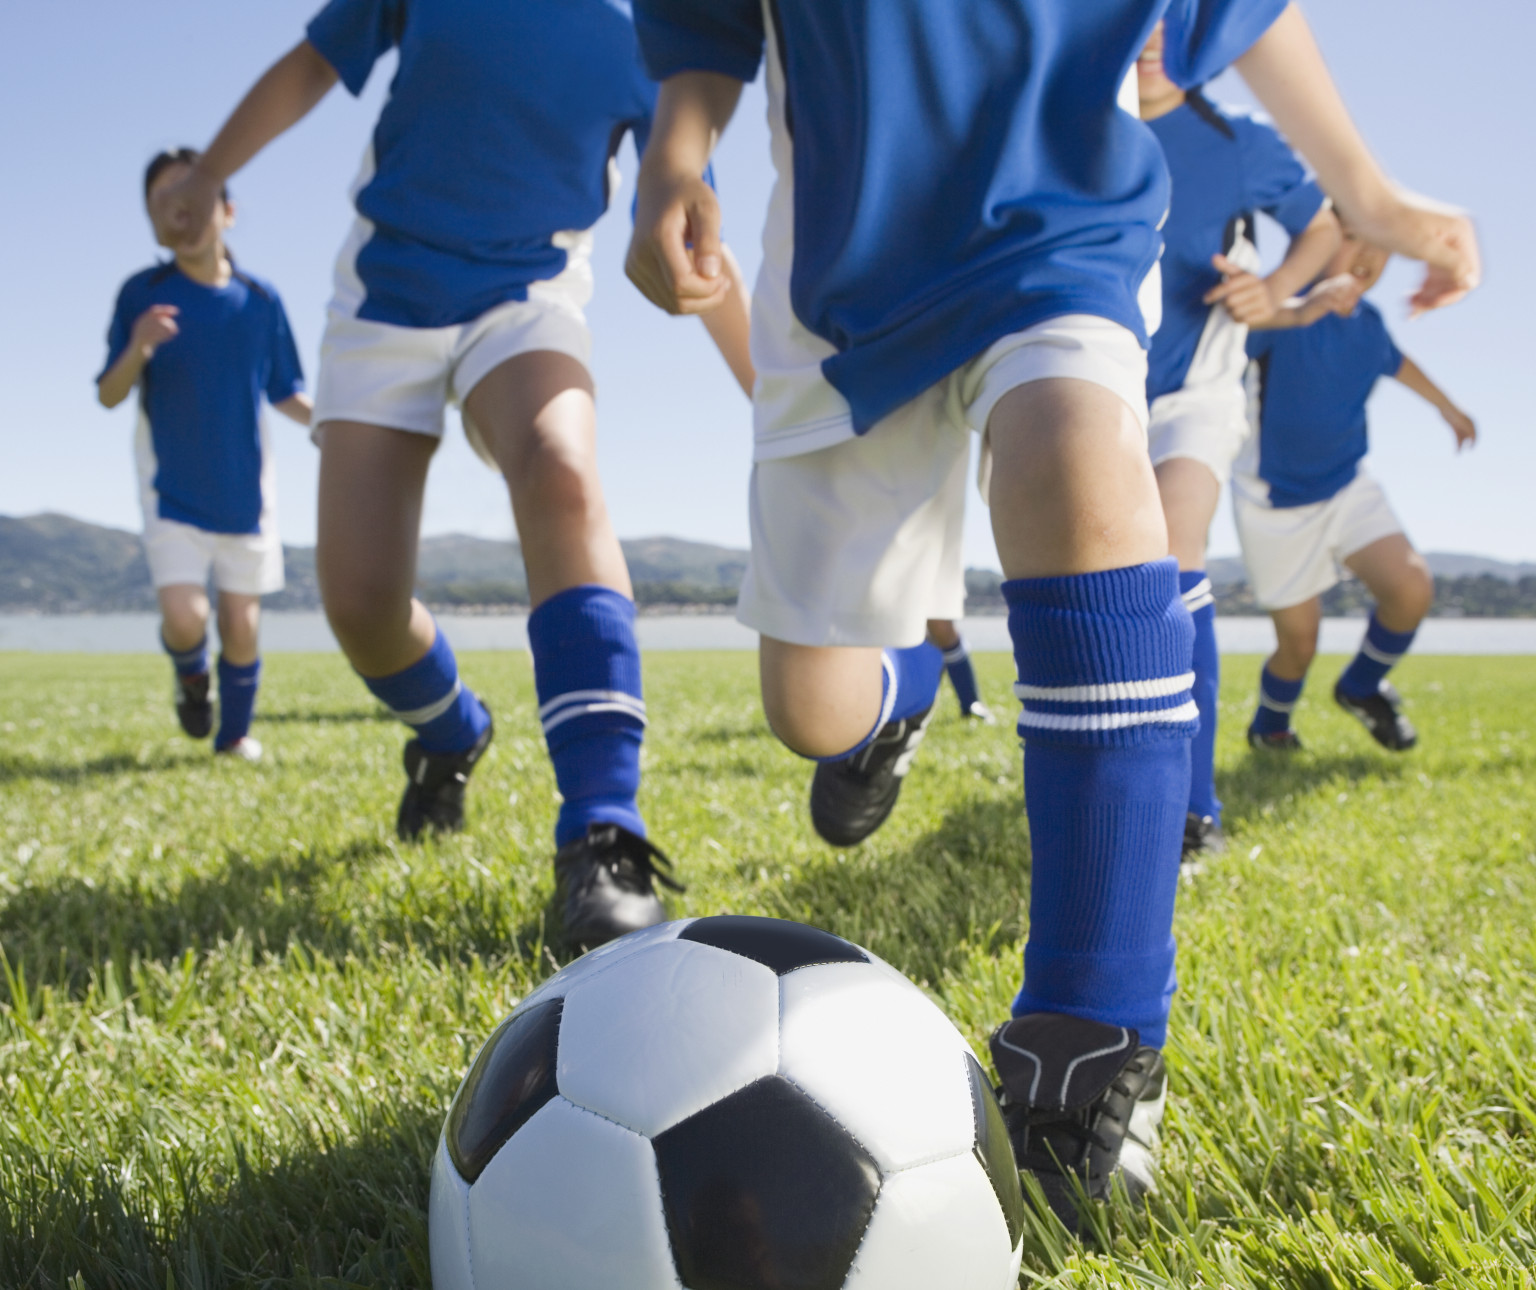 Children S Youth Sports: High Cost Of Youth Sports